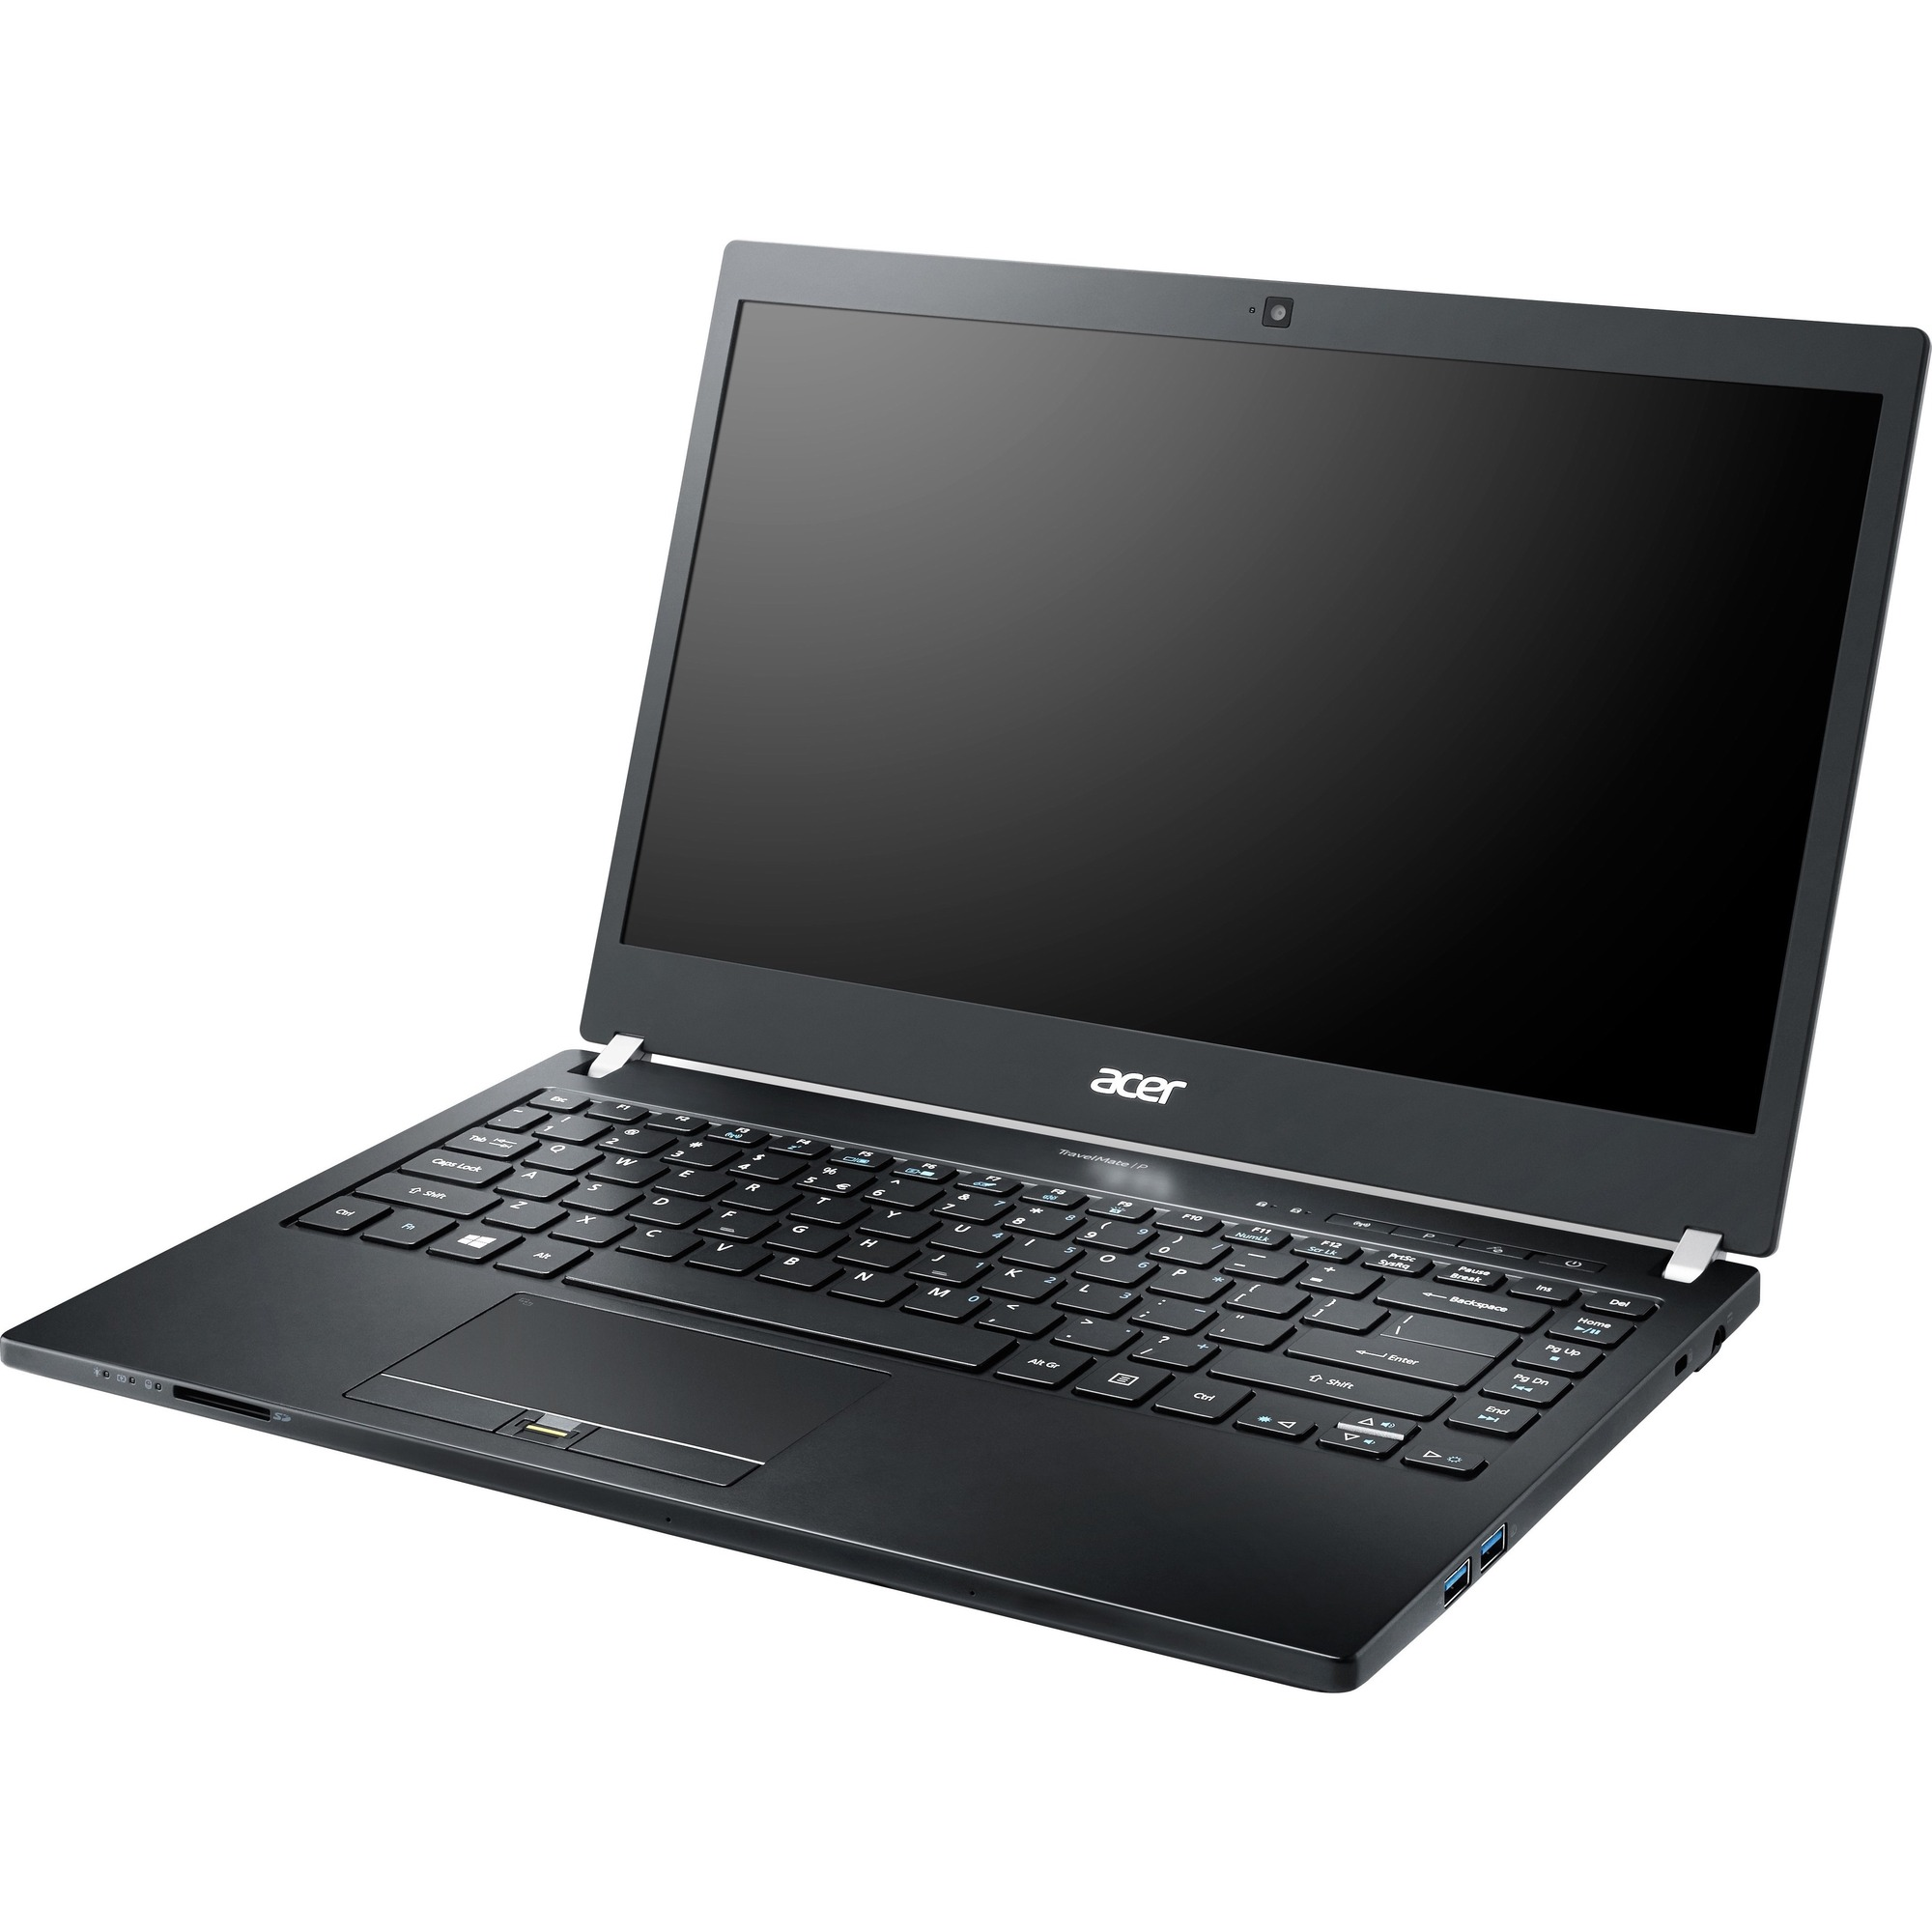 Acer TravelMate P645-S TMP645-S-75FR 35.6 cm 14inch LED In-plane Switching IPS Technology Notebook - Intel Core i7 i7-5500U Dual-core 2 Core 2.40 GHz - 8 GB DDR